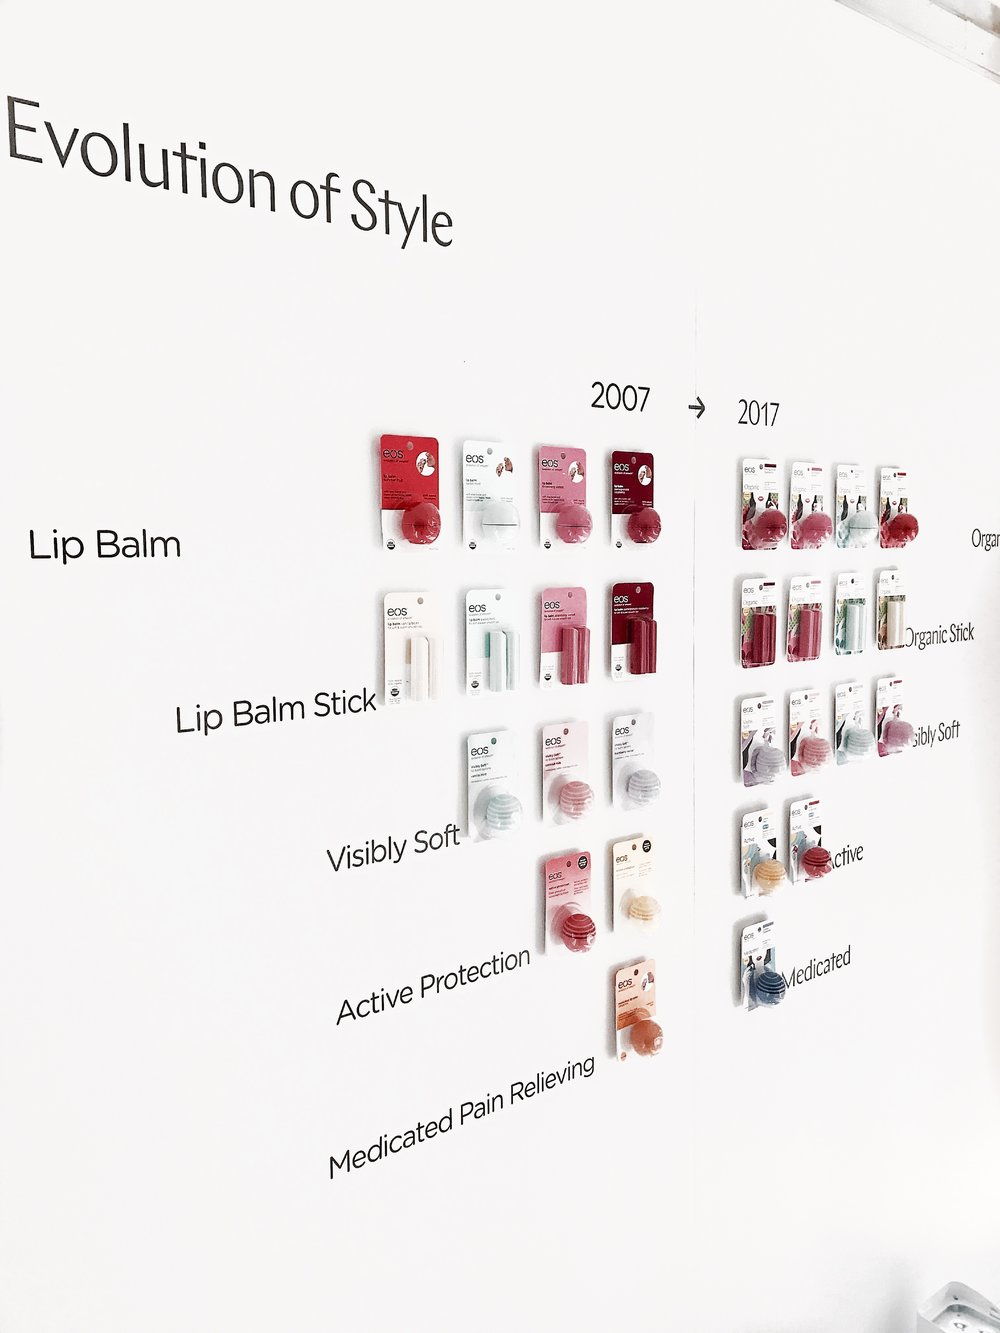 *Check-out the range of lip balms EOS offers and the evolution of style from 2007 - 2017